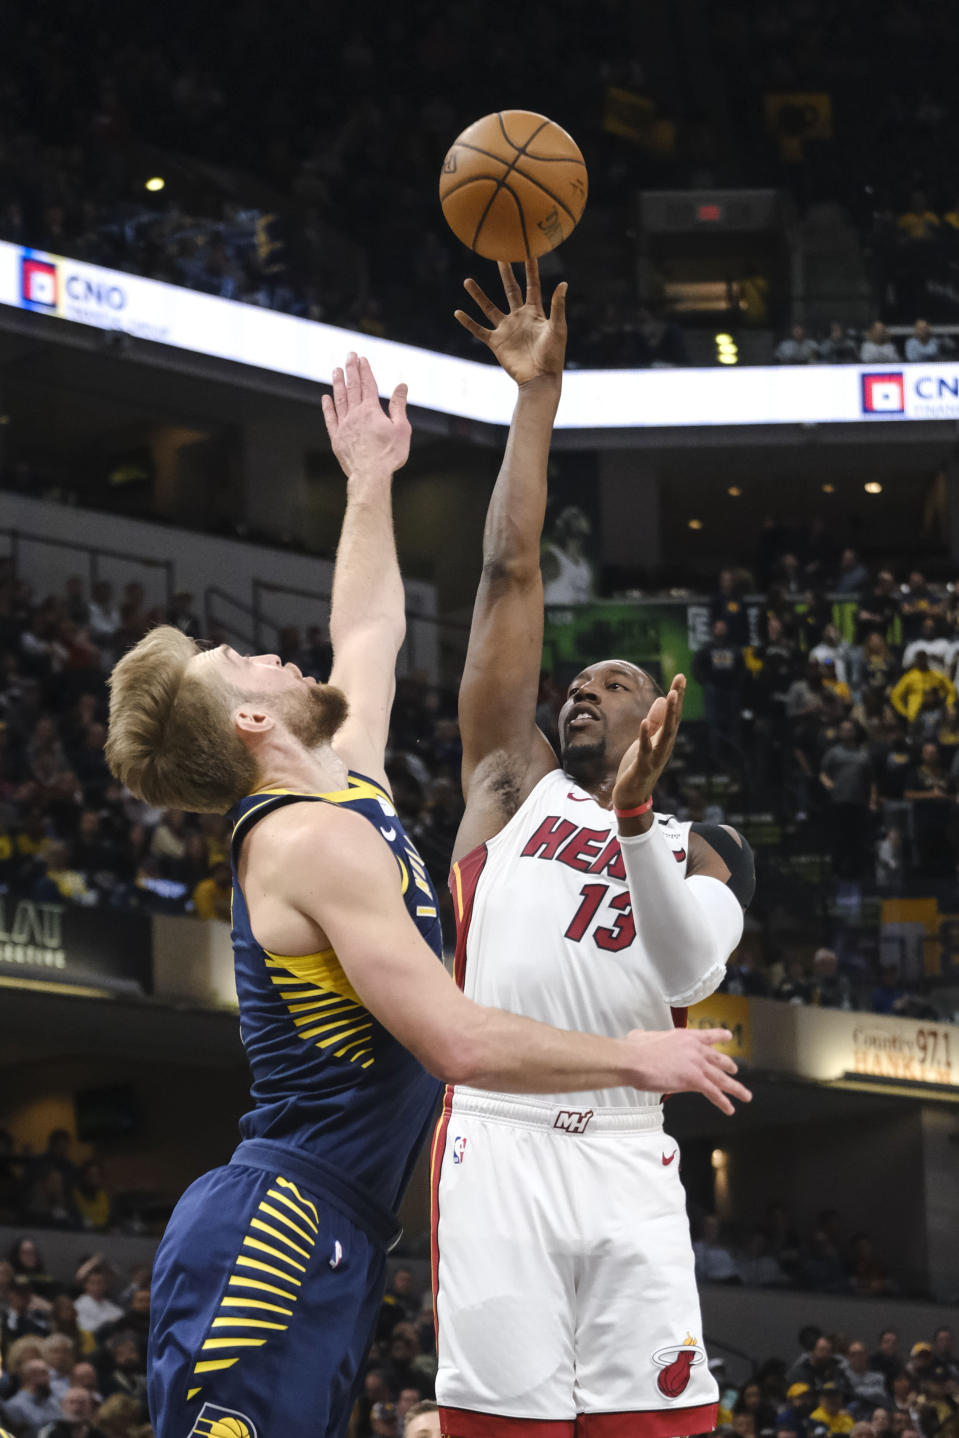 Miami Heat center Bam Adebayo (13) shoots over Indiana Pacers forward Domantas Sabonis (11) during the first half of an NBA basketball game in Indianapolis, Wednesday, Jan. 8, 2020. (AP Photo/AJ Mast)